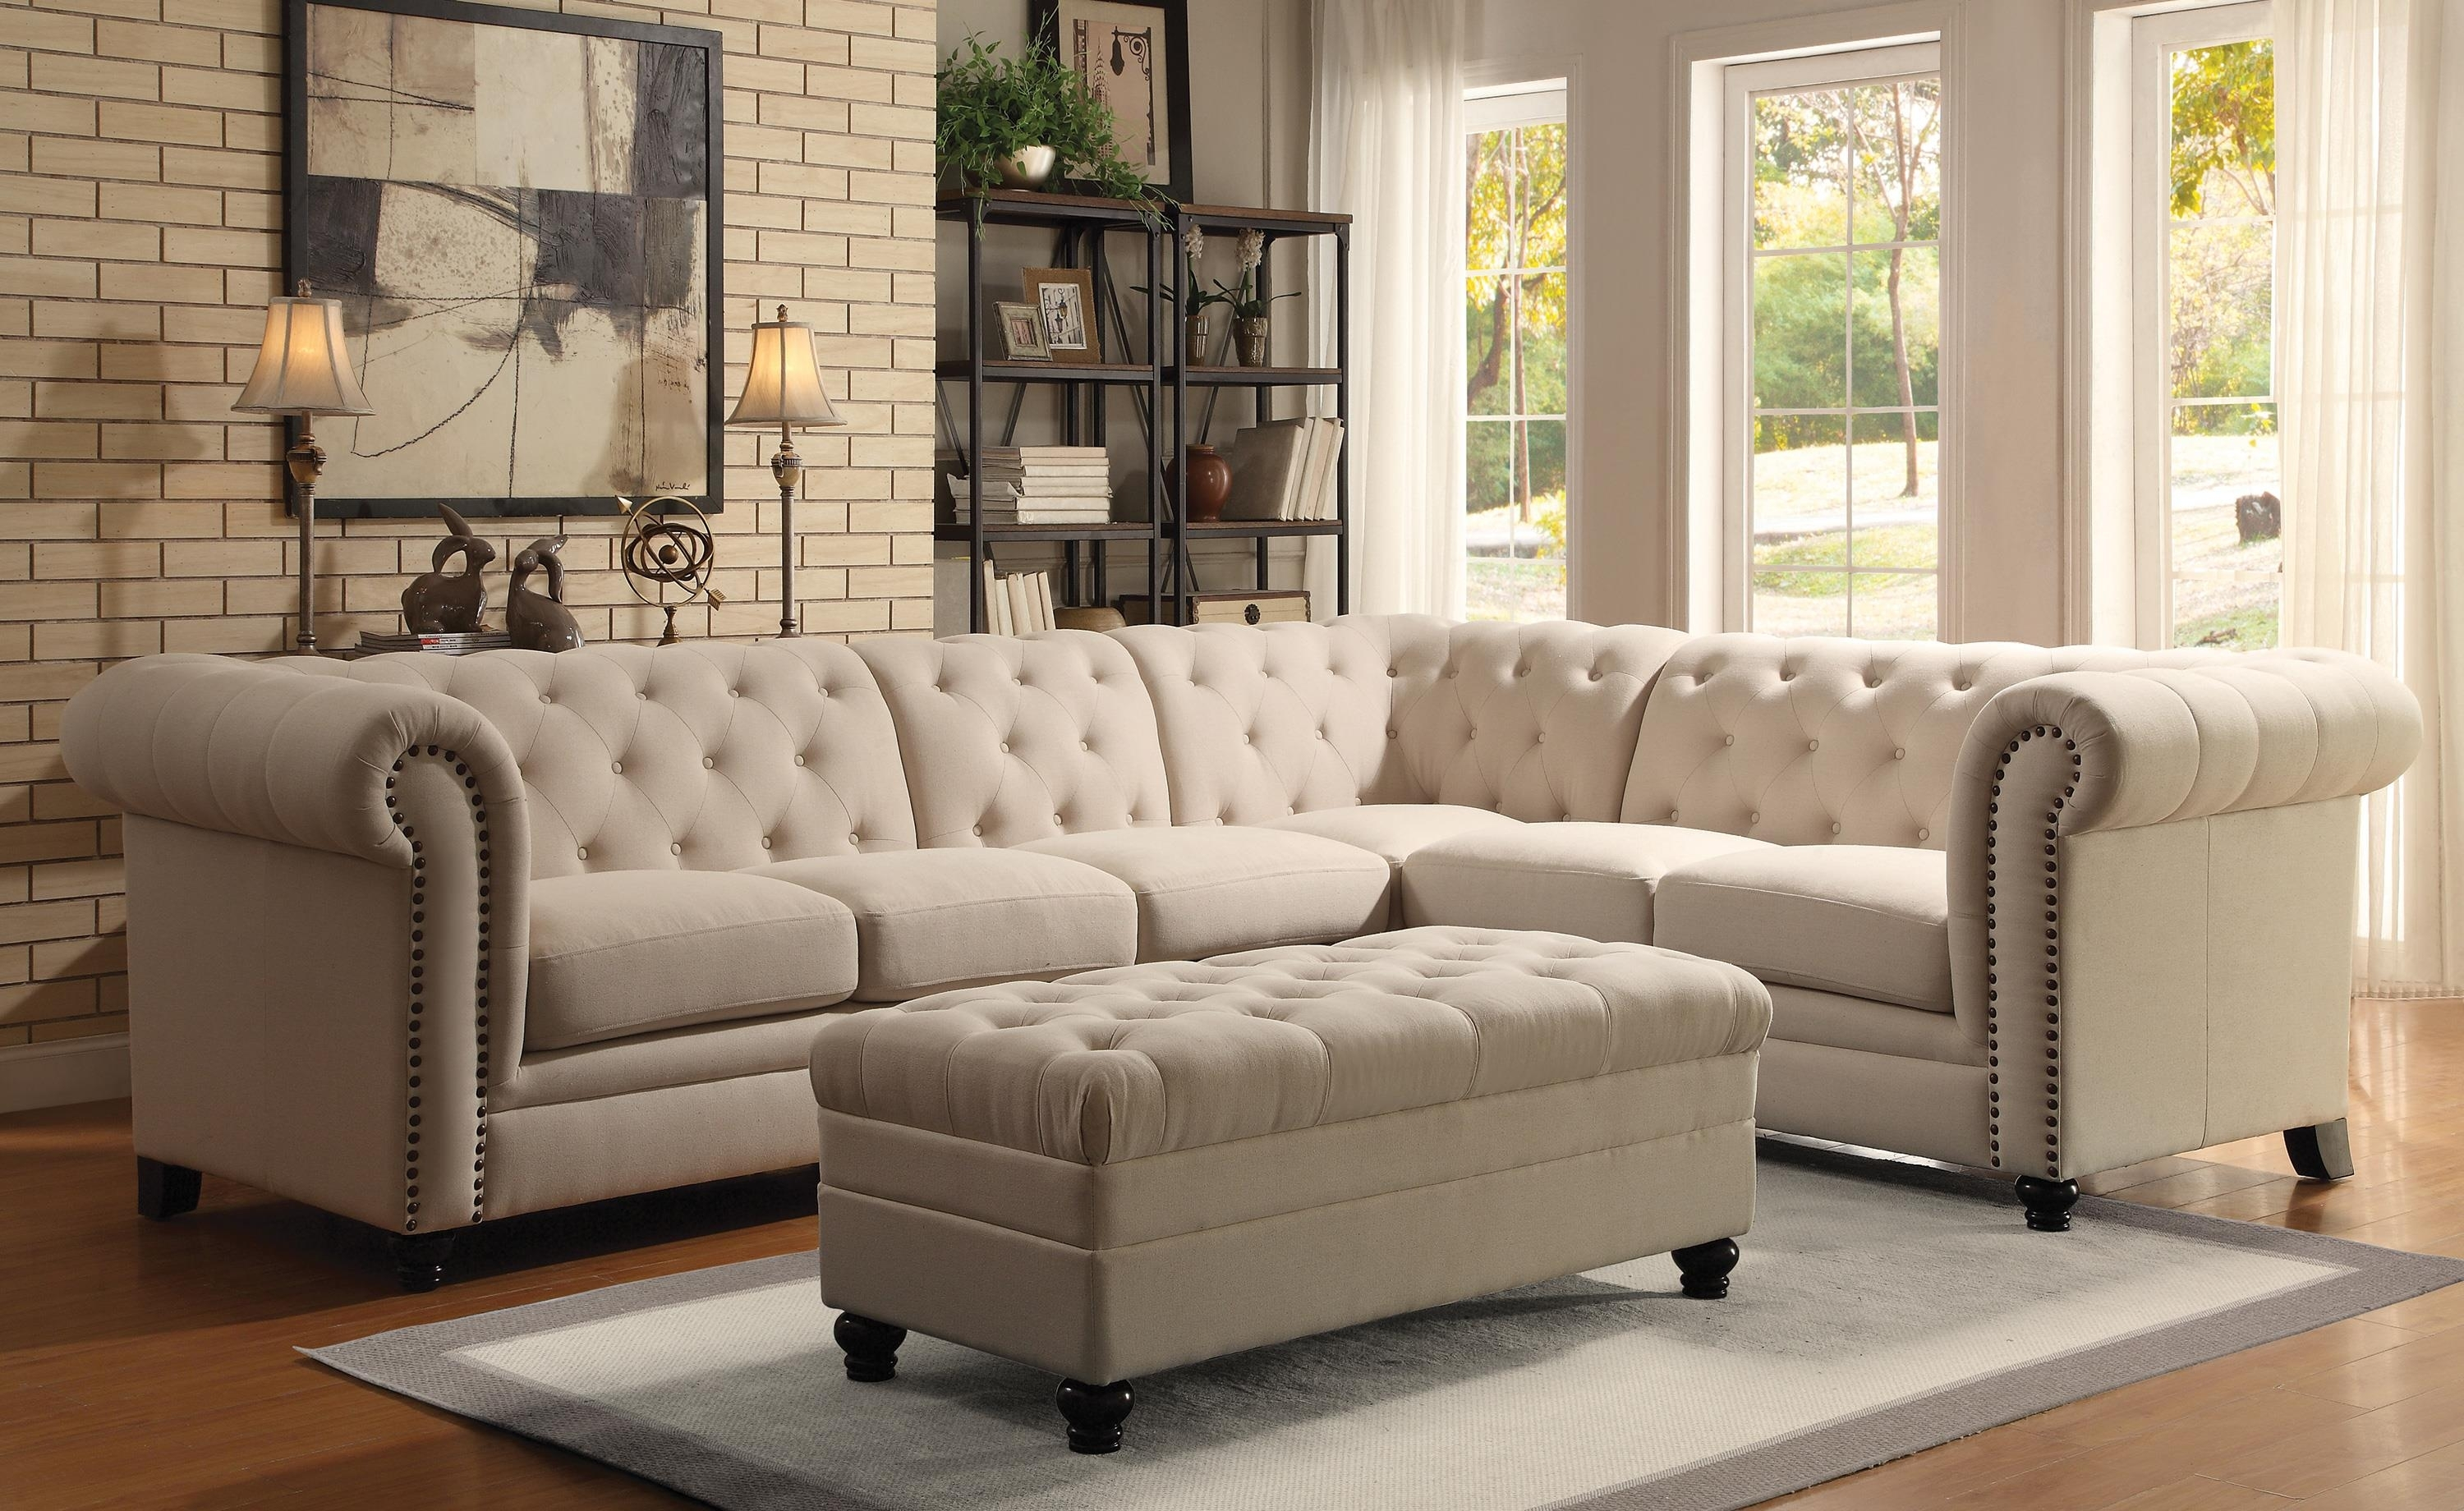 Featured Image of Tufted Sectional Sofas With Chaise